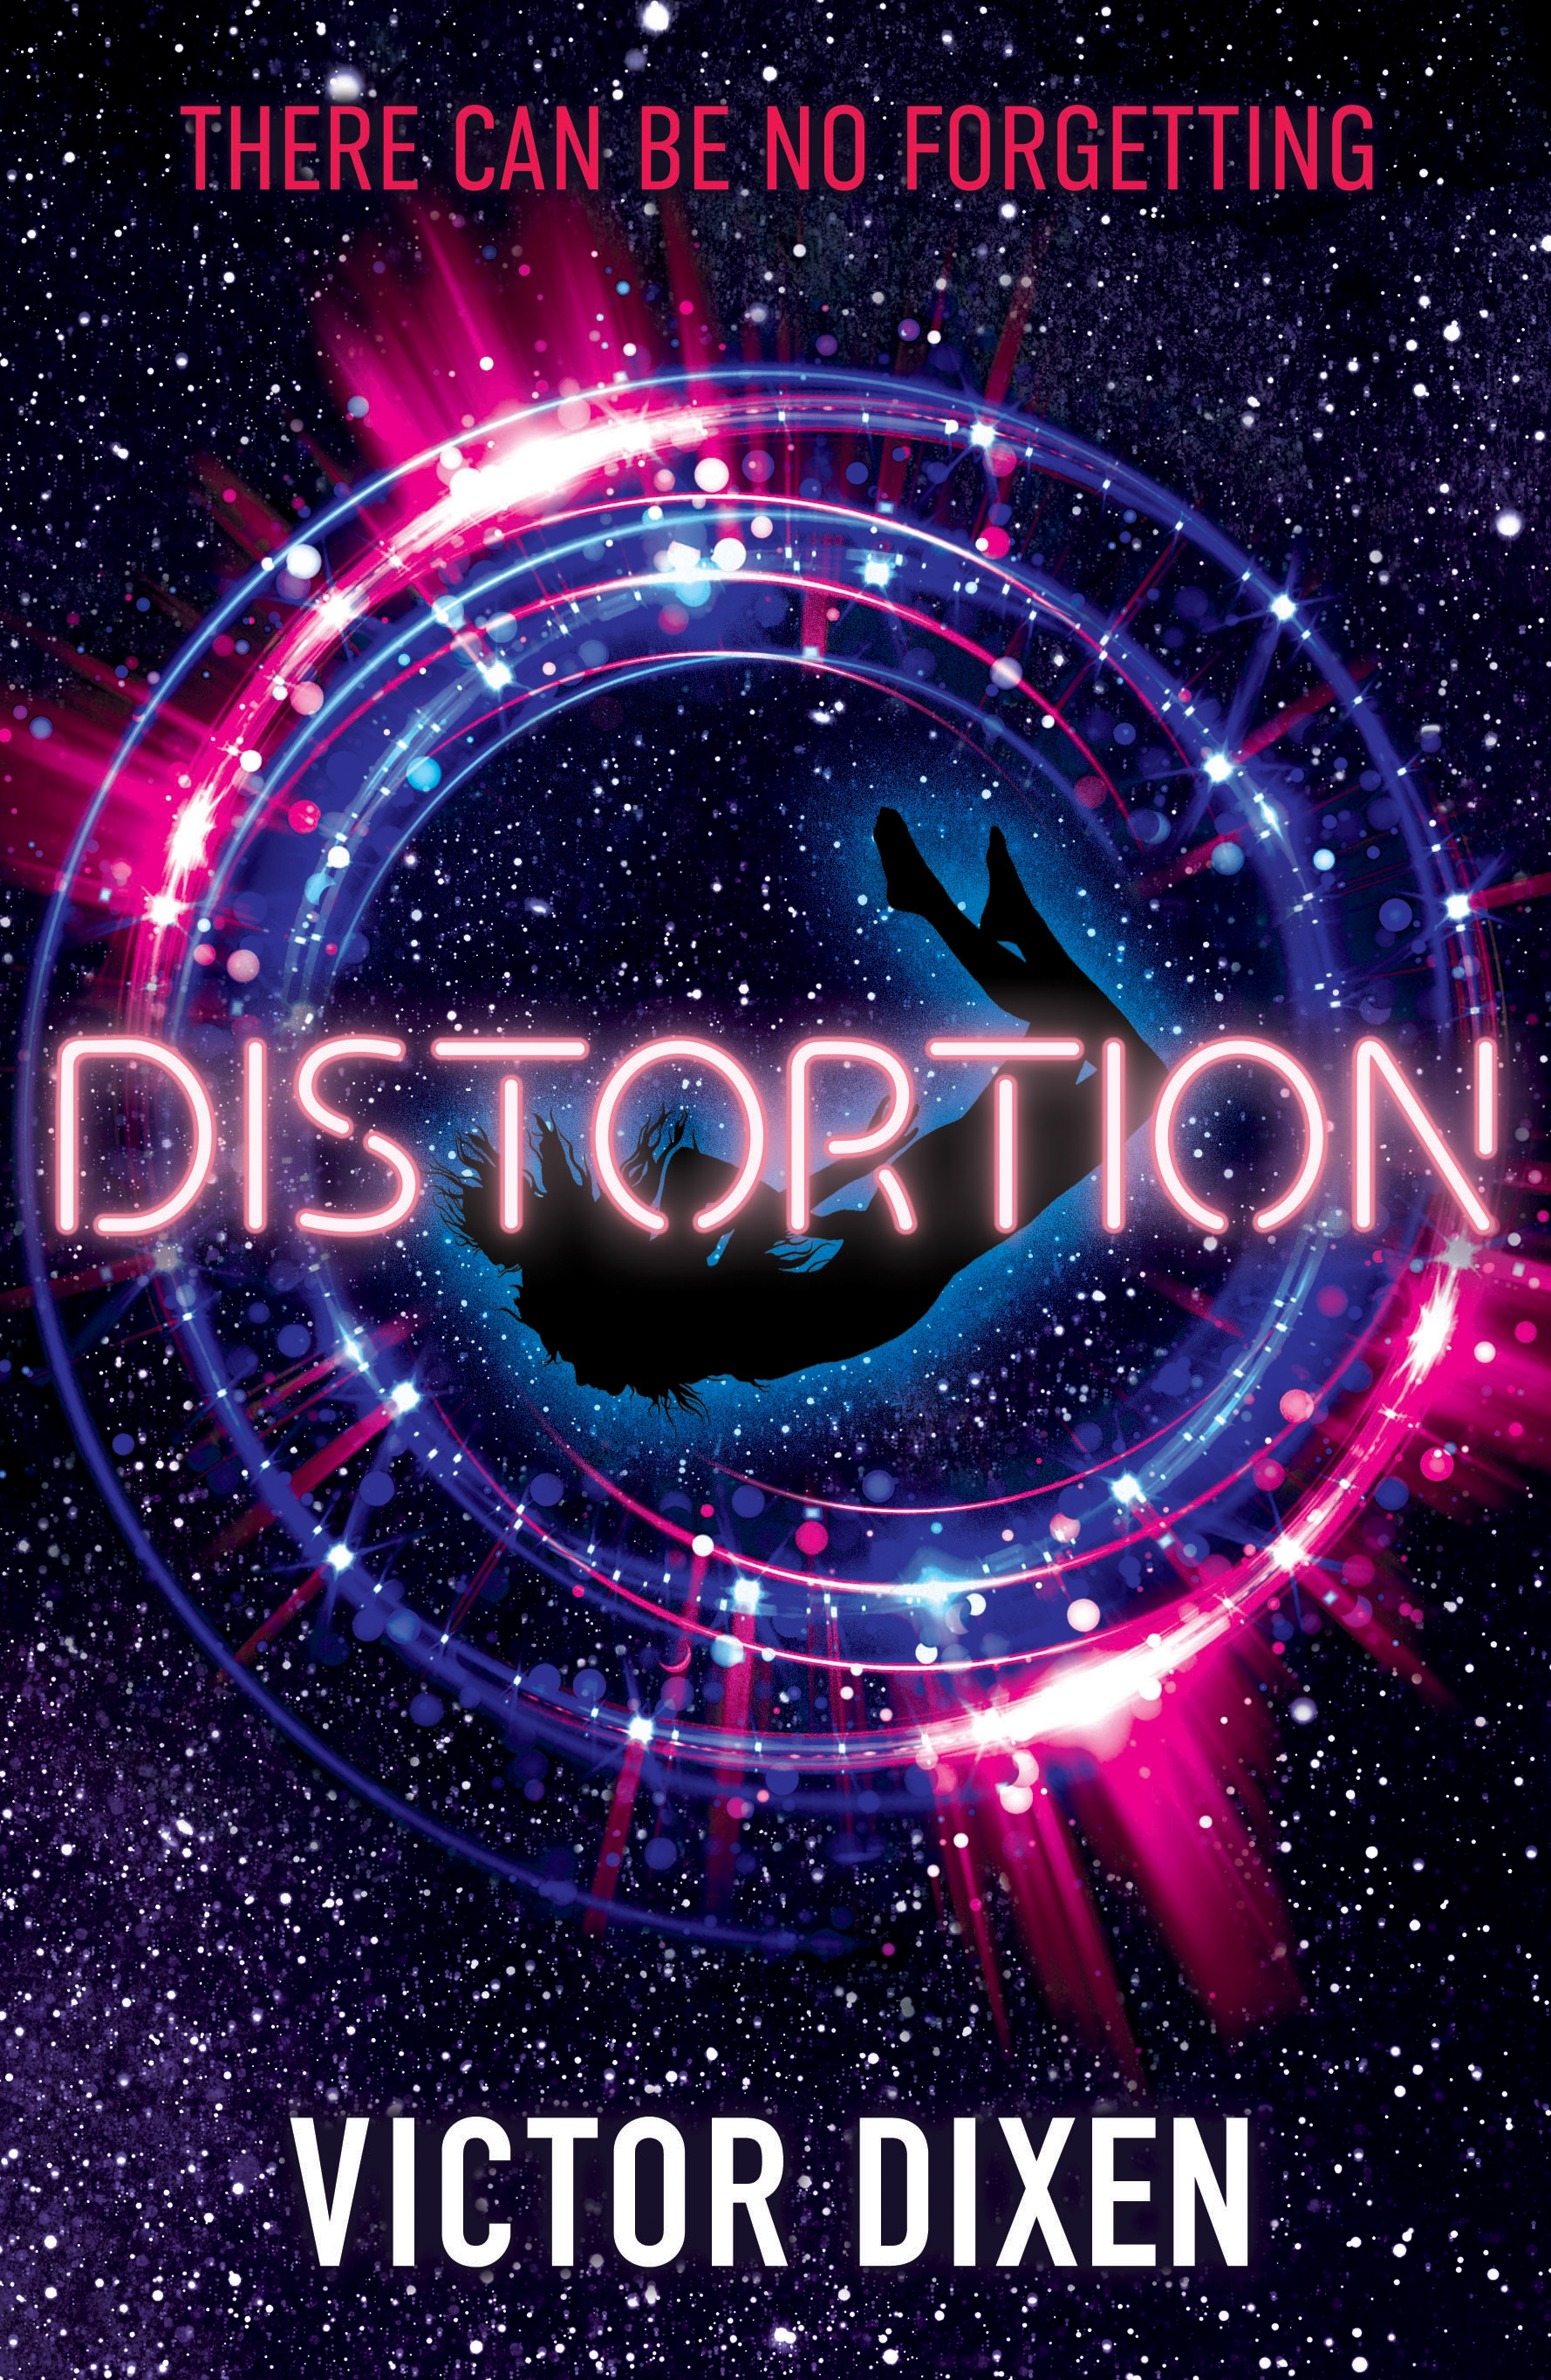 Distortion by Victor Dixen